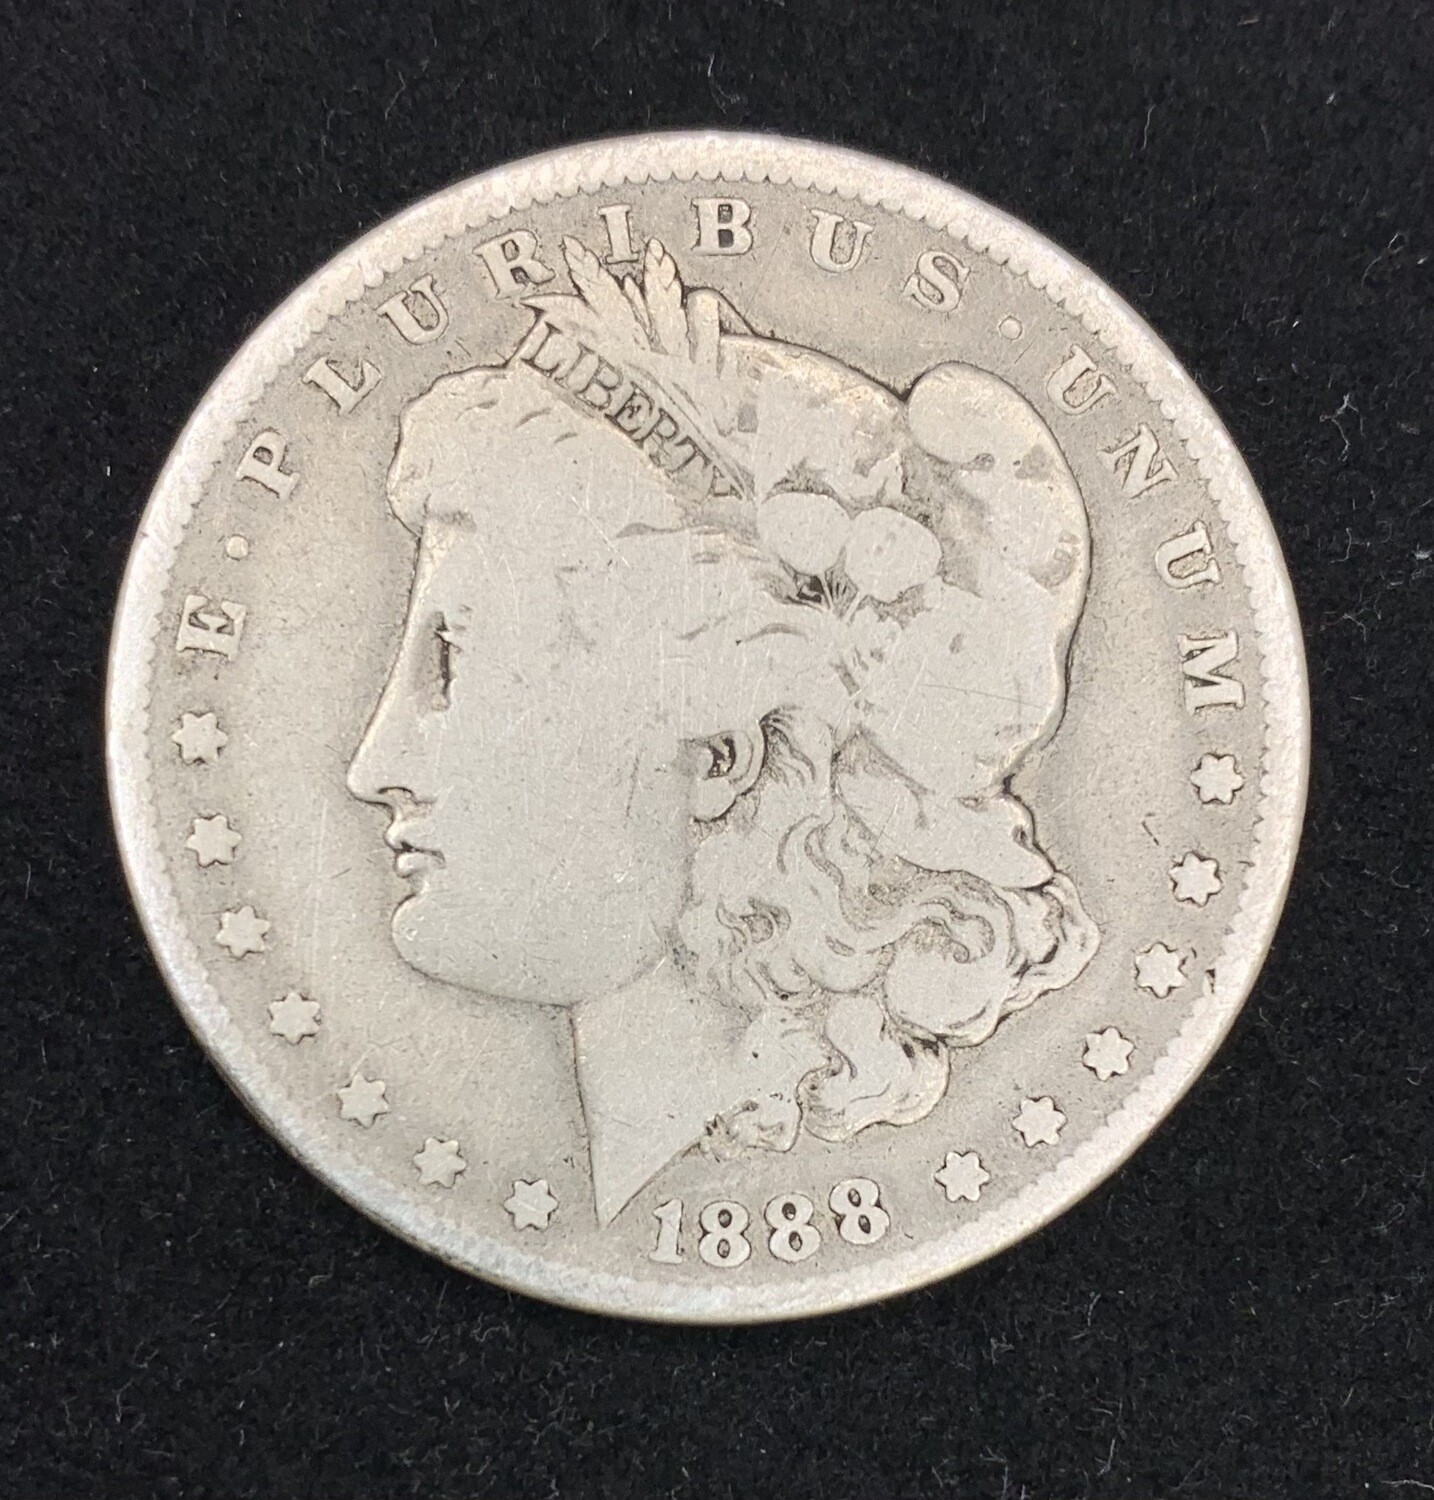 1988 Morgan Silver Dollar - New Or leans Mint